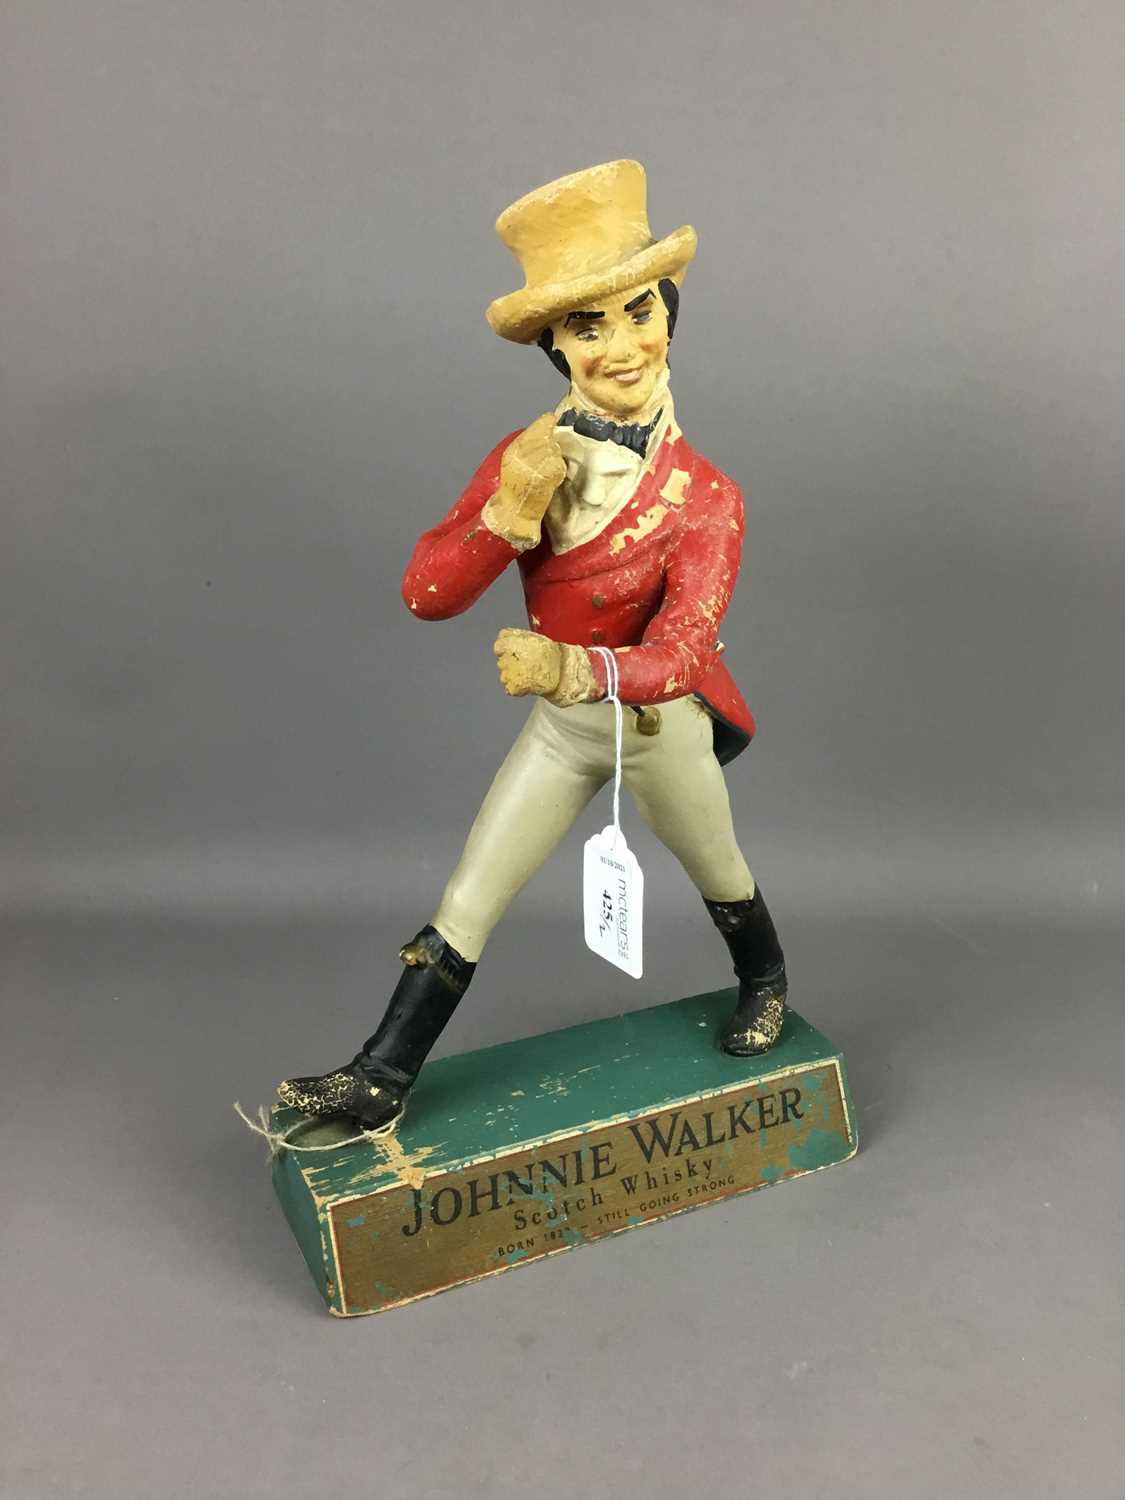 Lot 425 - A JOHNNIE WALKER ADVERTISEMENT FIGURE ALONG WITH A SIGNAL REGISTER COVER